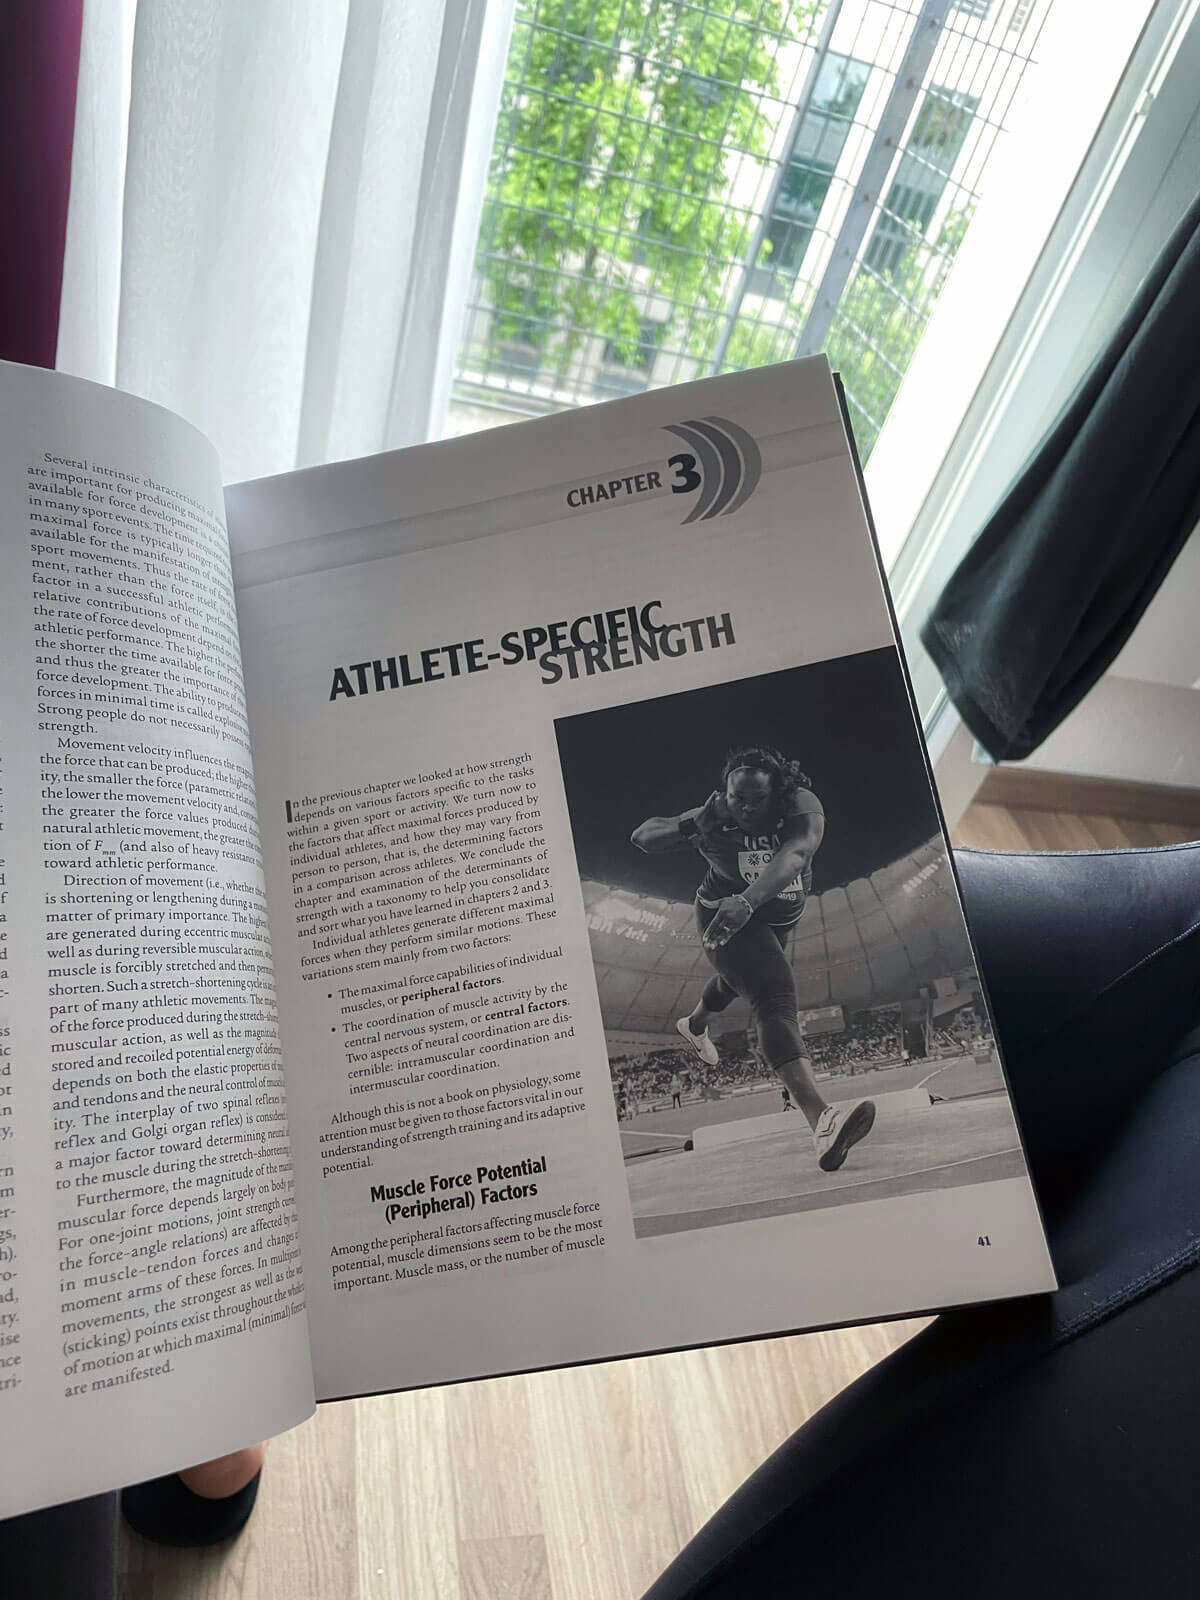 Science and Practice of Strength Training by Vladimir Zatsiorsky - Chapter 3